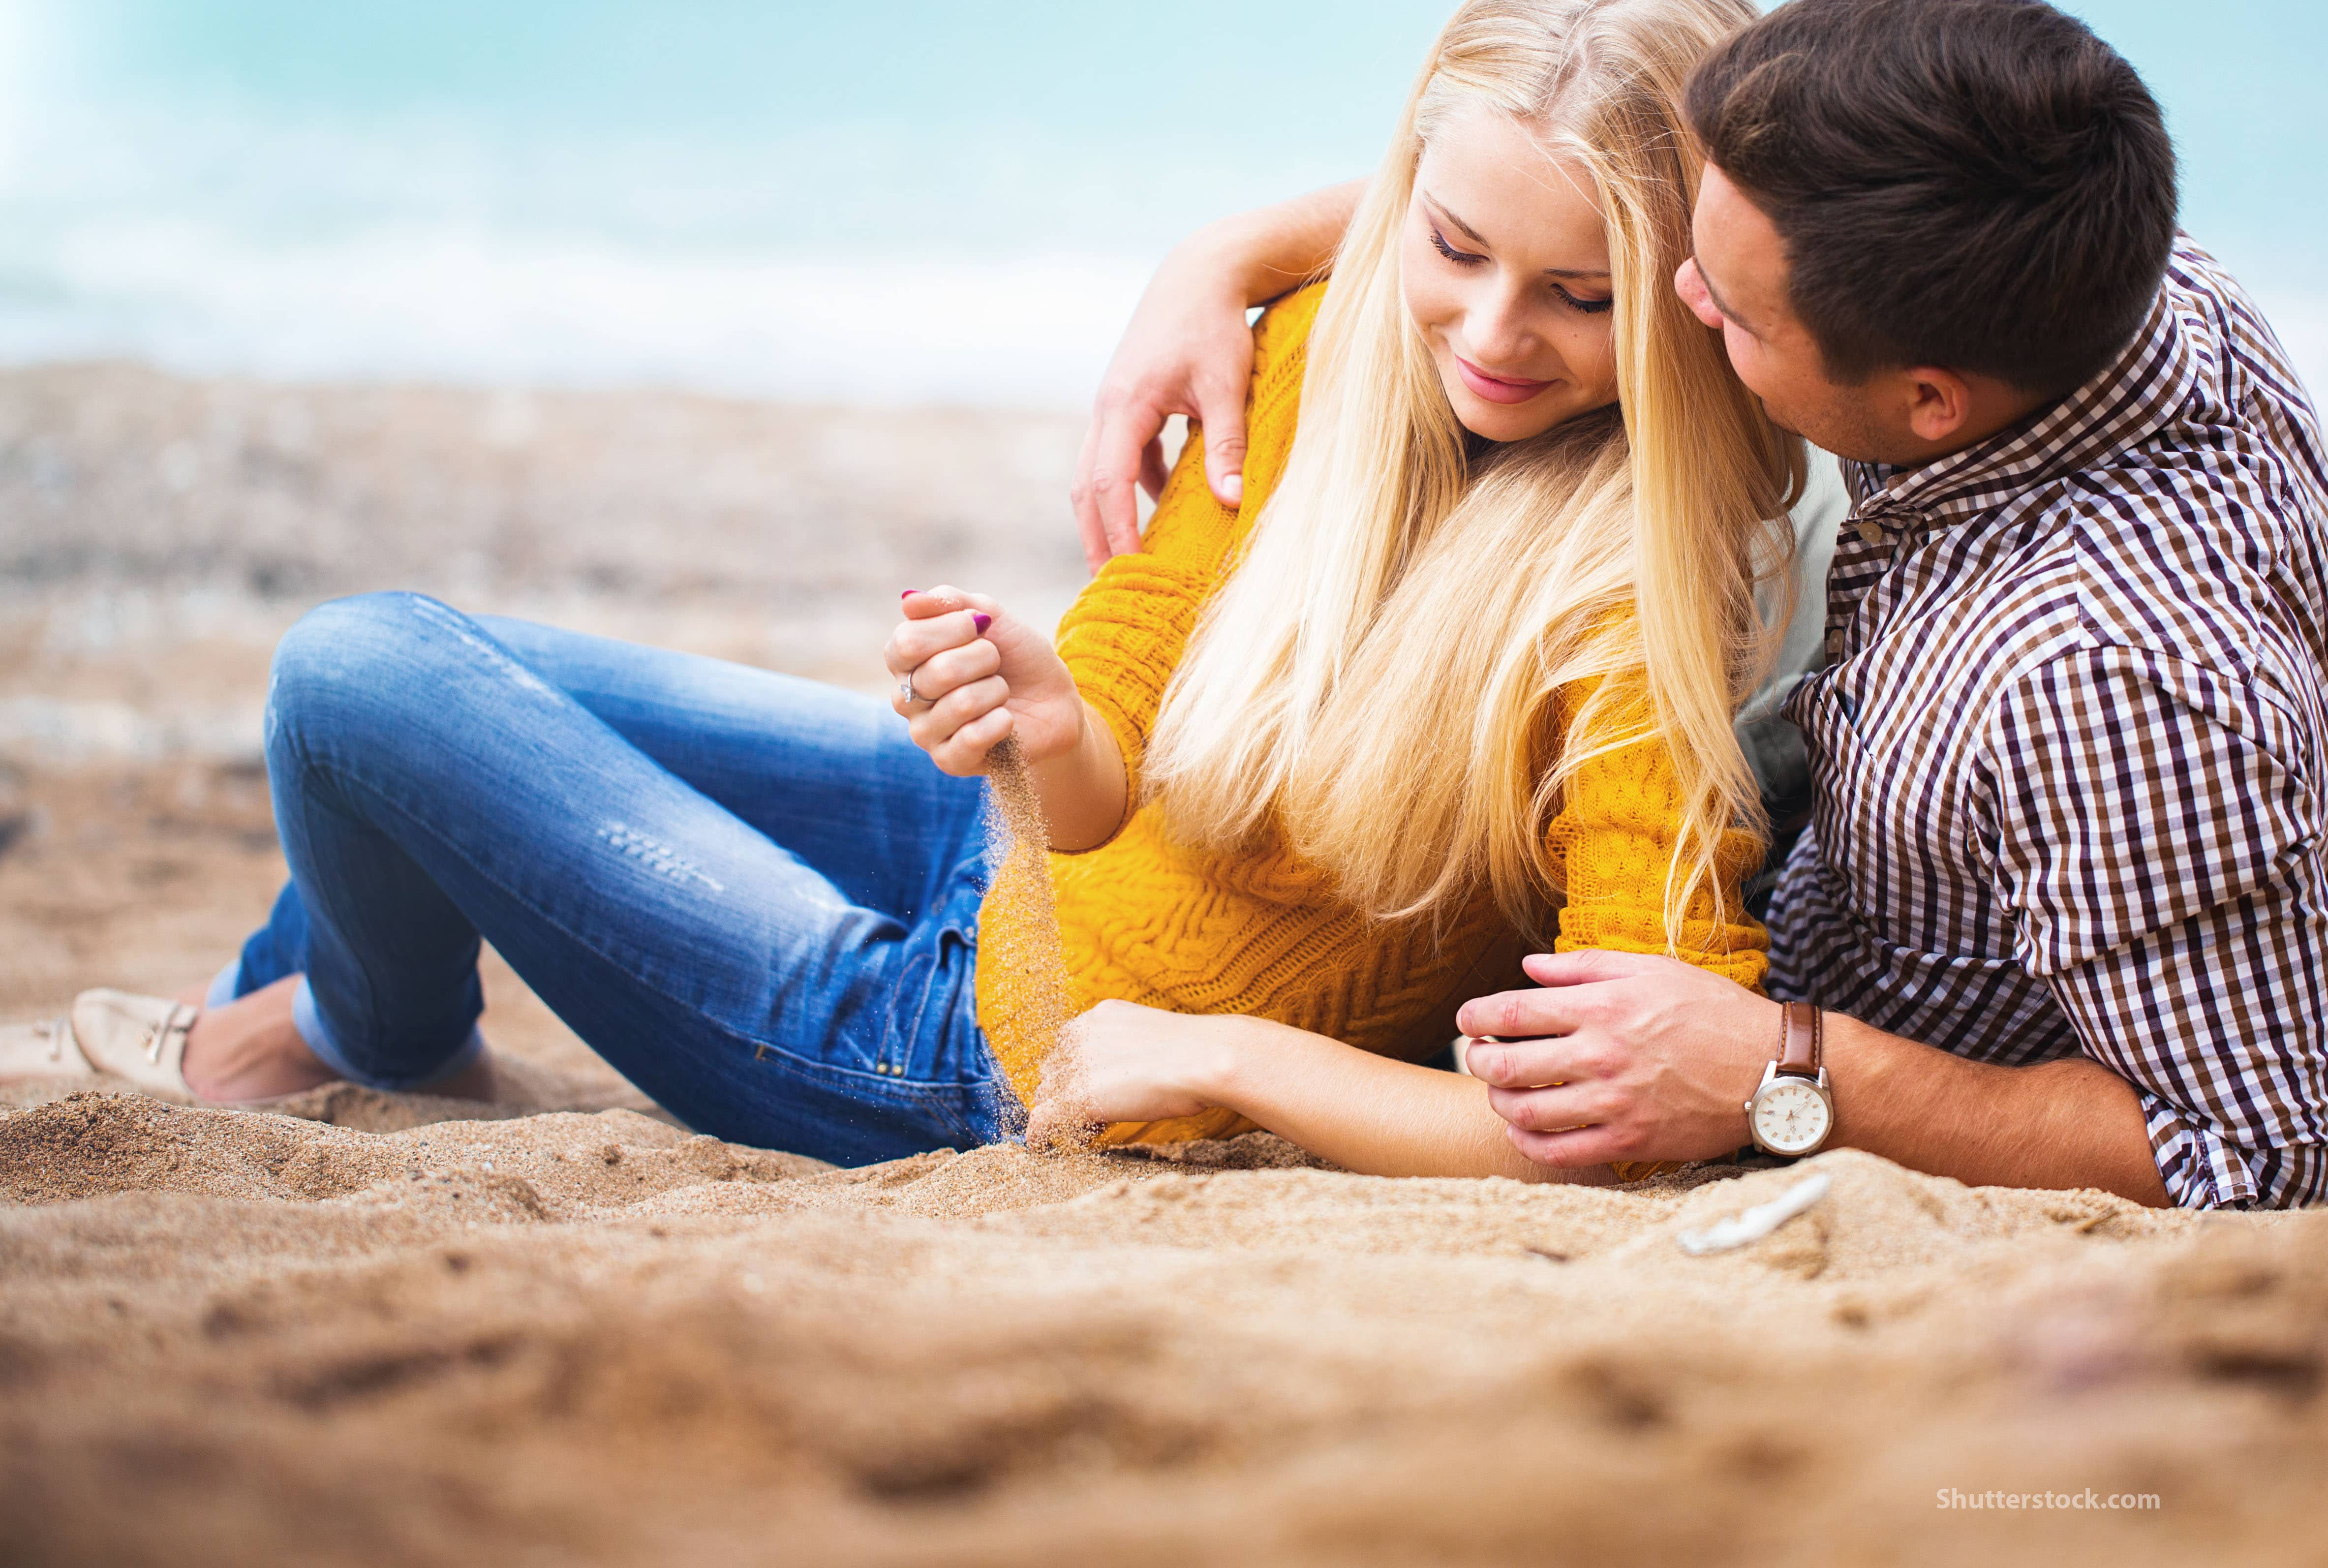 sexual purity, Christian dating advice,